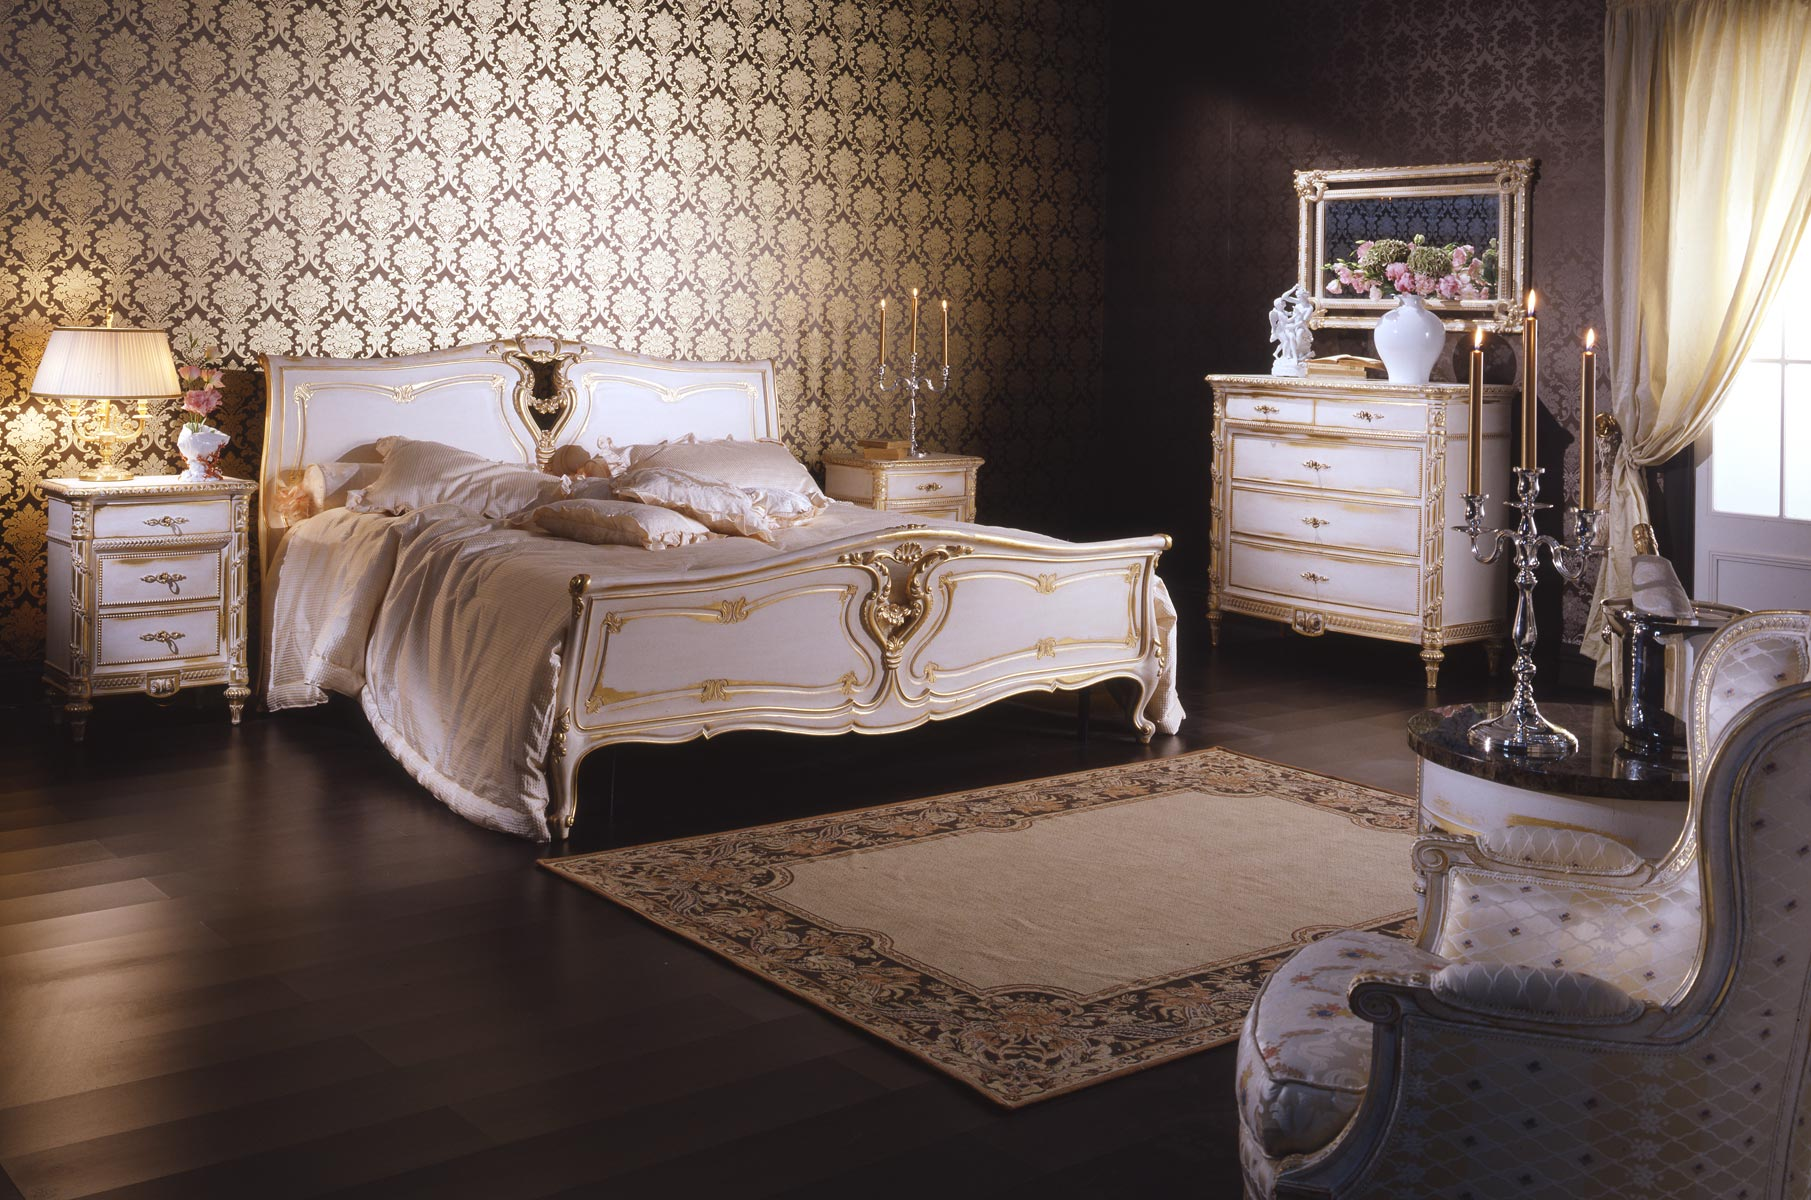 Classic Louis Xvi Bedroom Made Of Bed Chest Of Drawers And Night Tables All In Carved Wood And